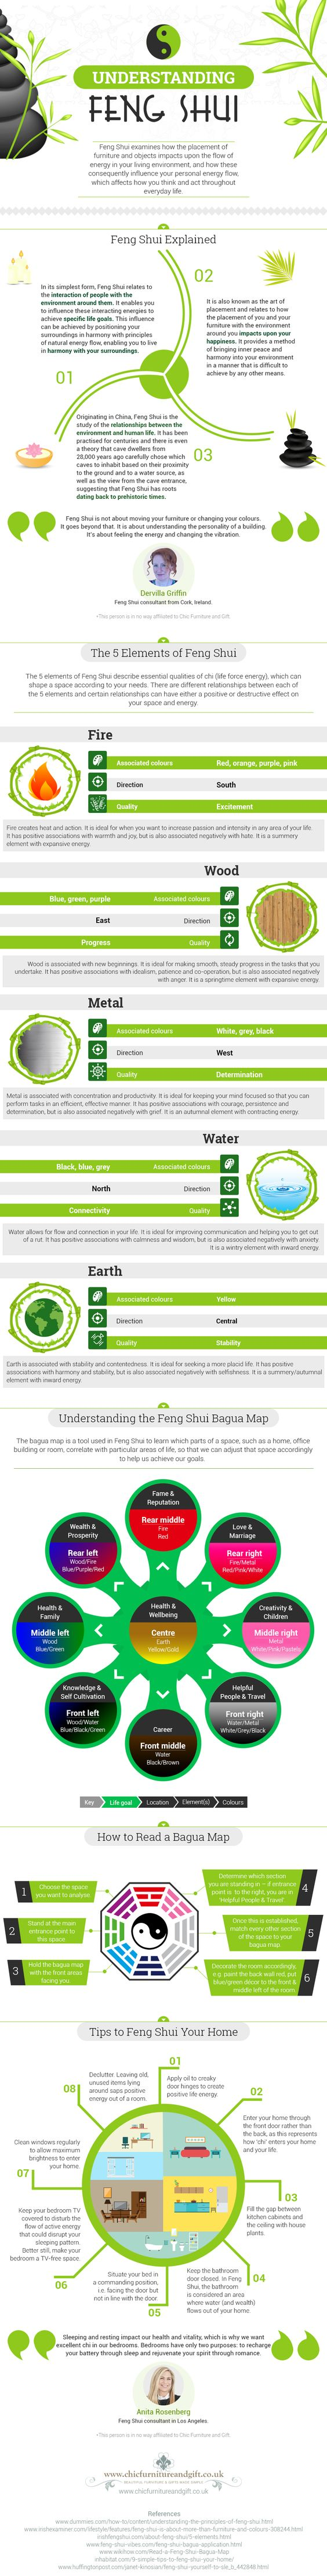 Water Feng Shui Element Infographics To Infographic Feng Shui Elements And Bagua Map Understanding Feng Shui Elements Bagua Map Epic Home Ideas